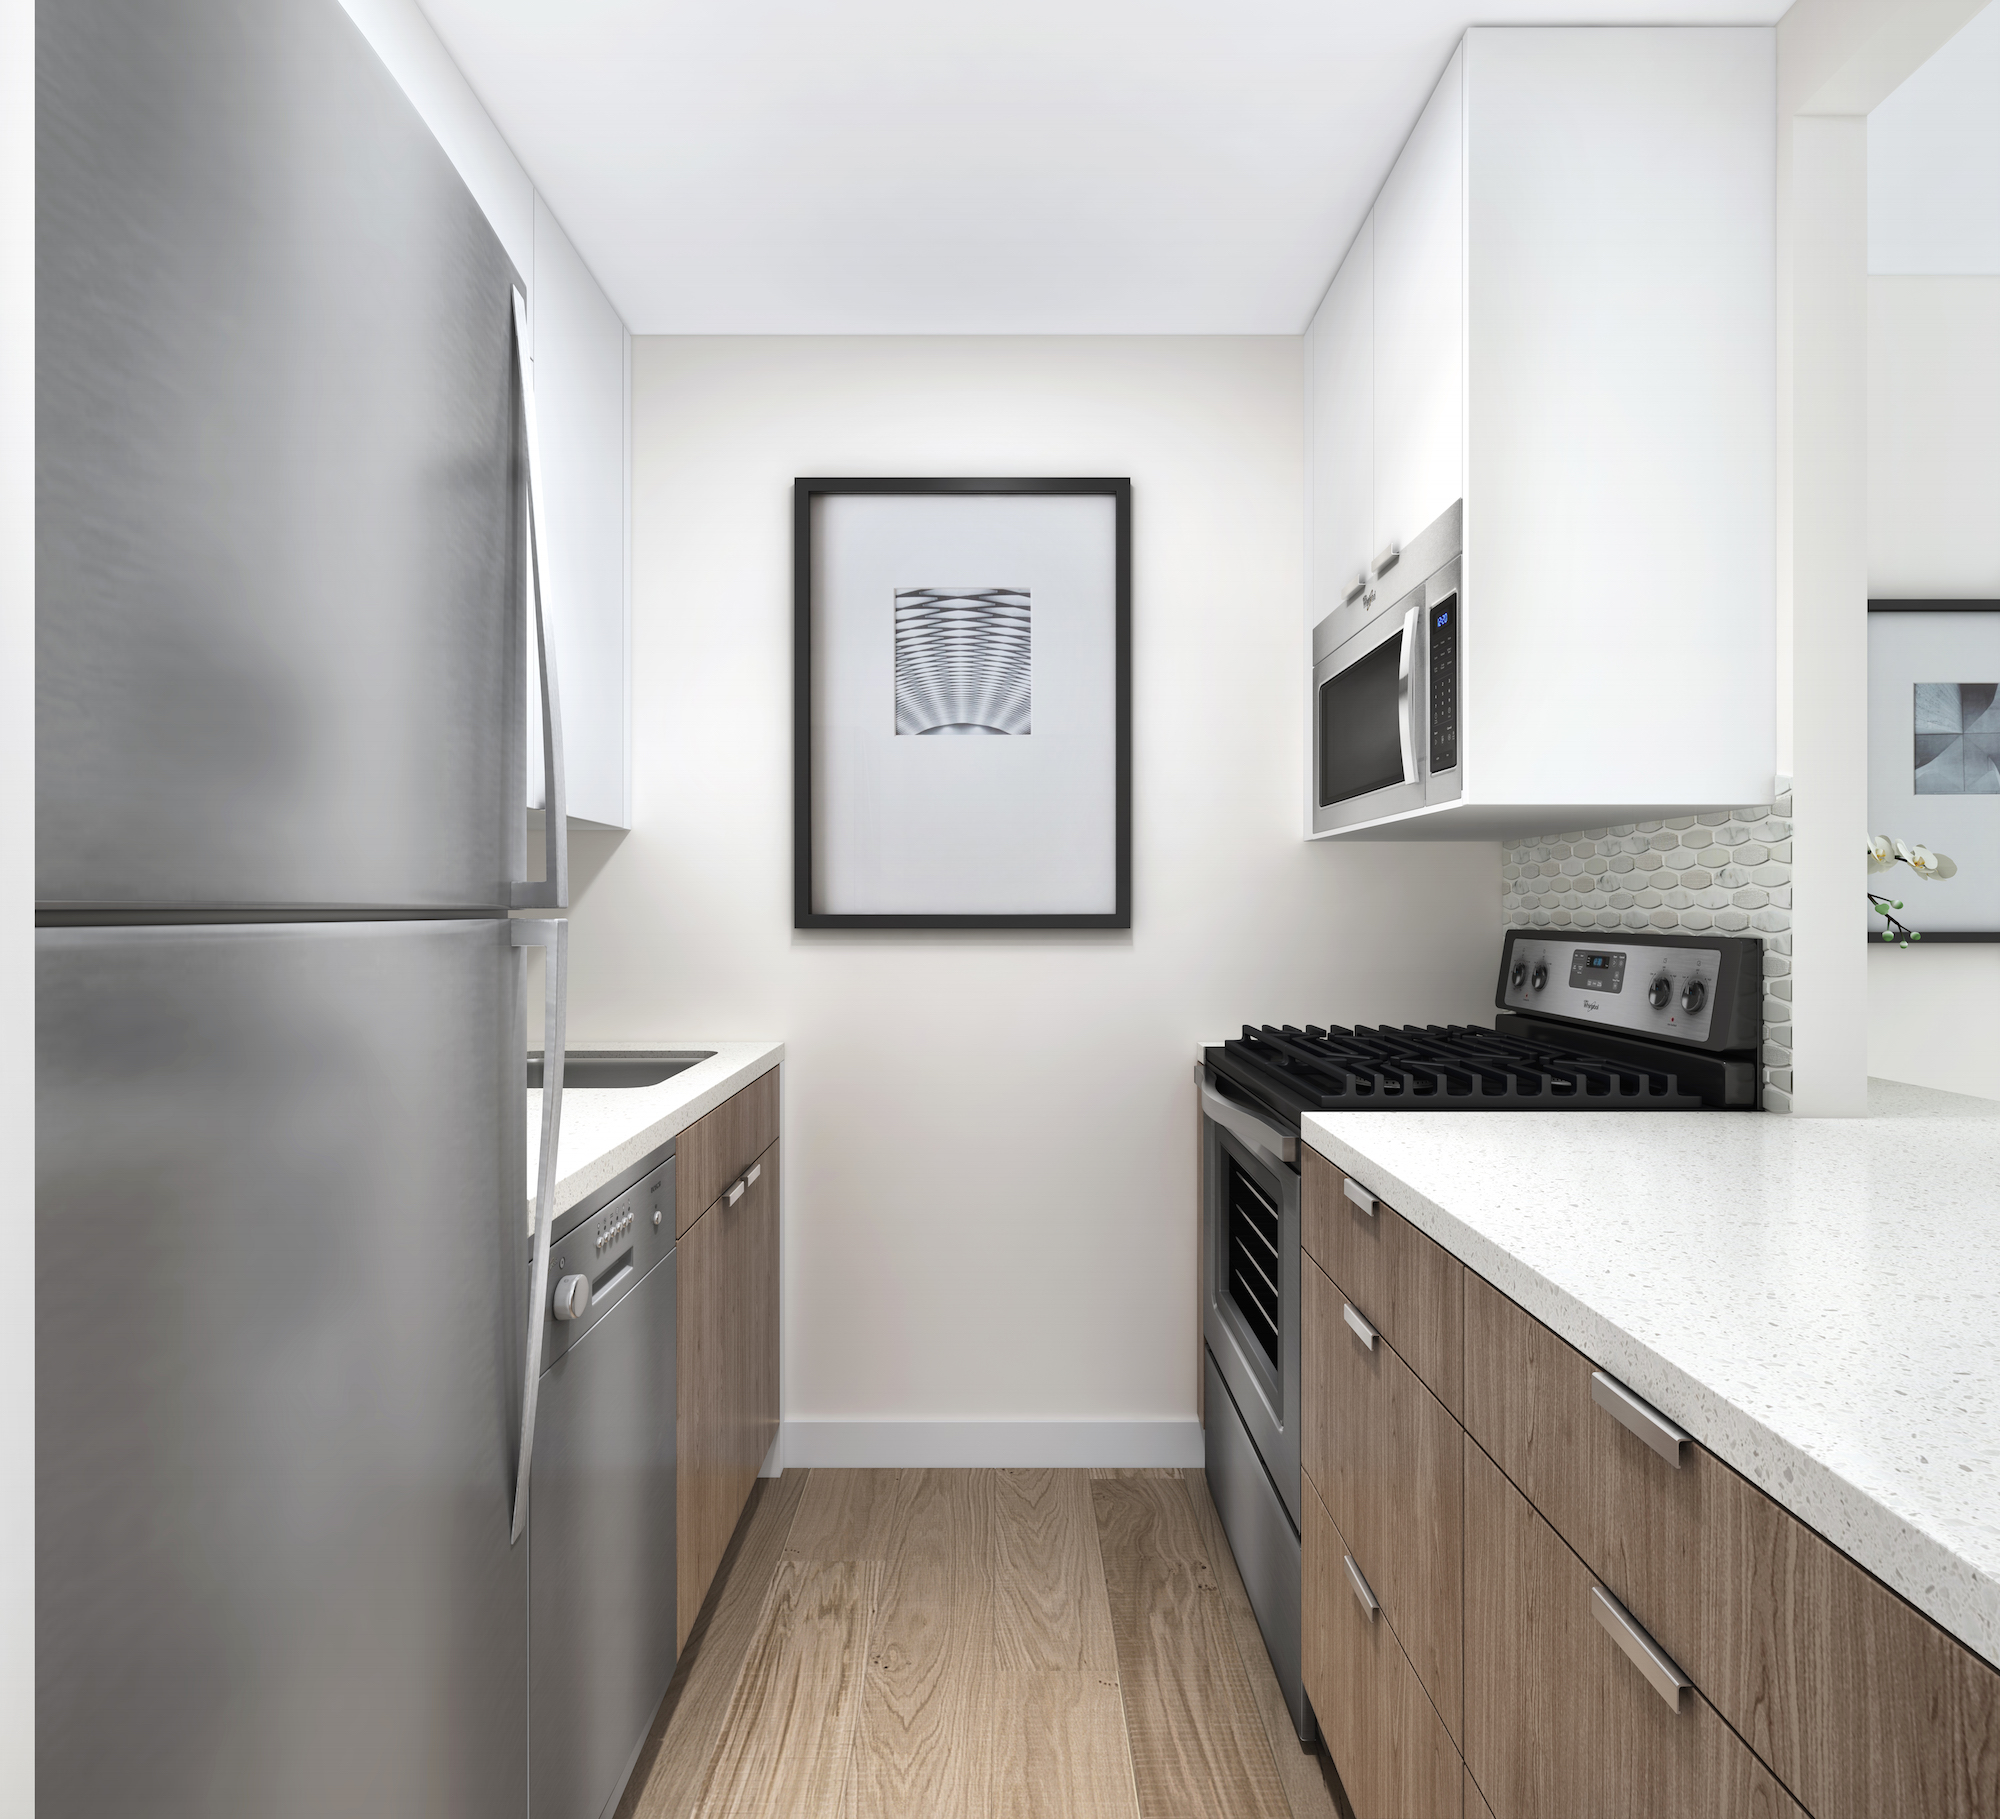 Lefrak S Hotel To Rental Conversion Murray Hill Marquis